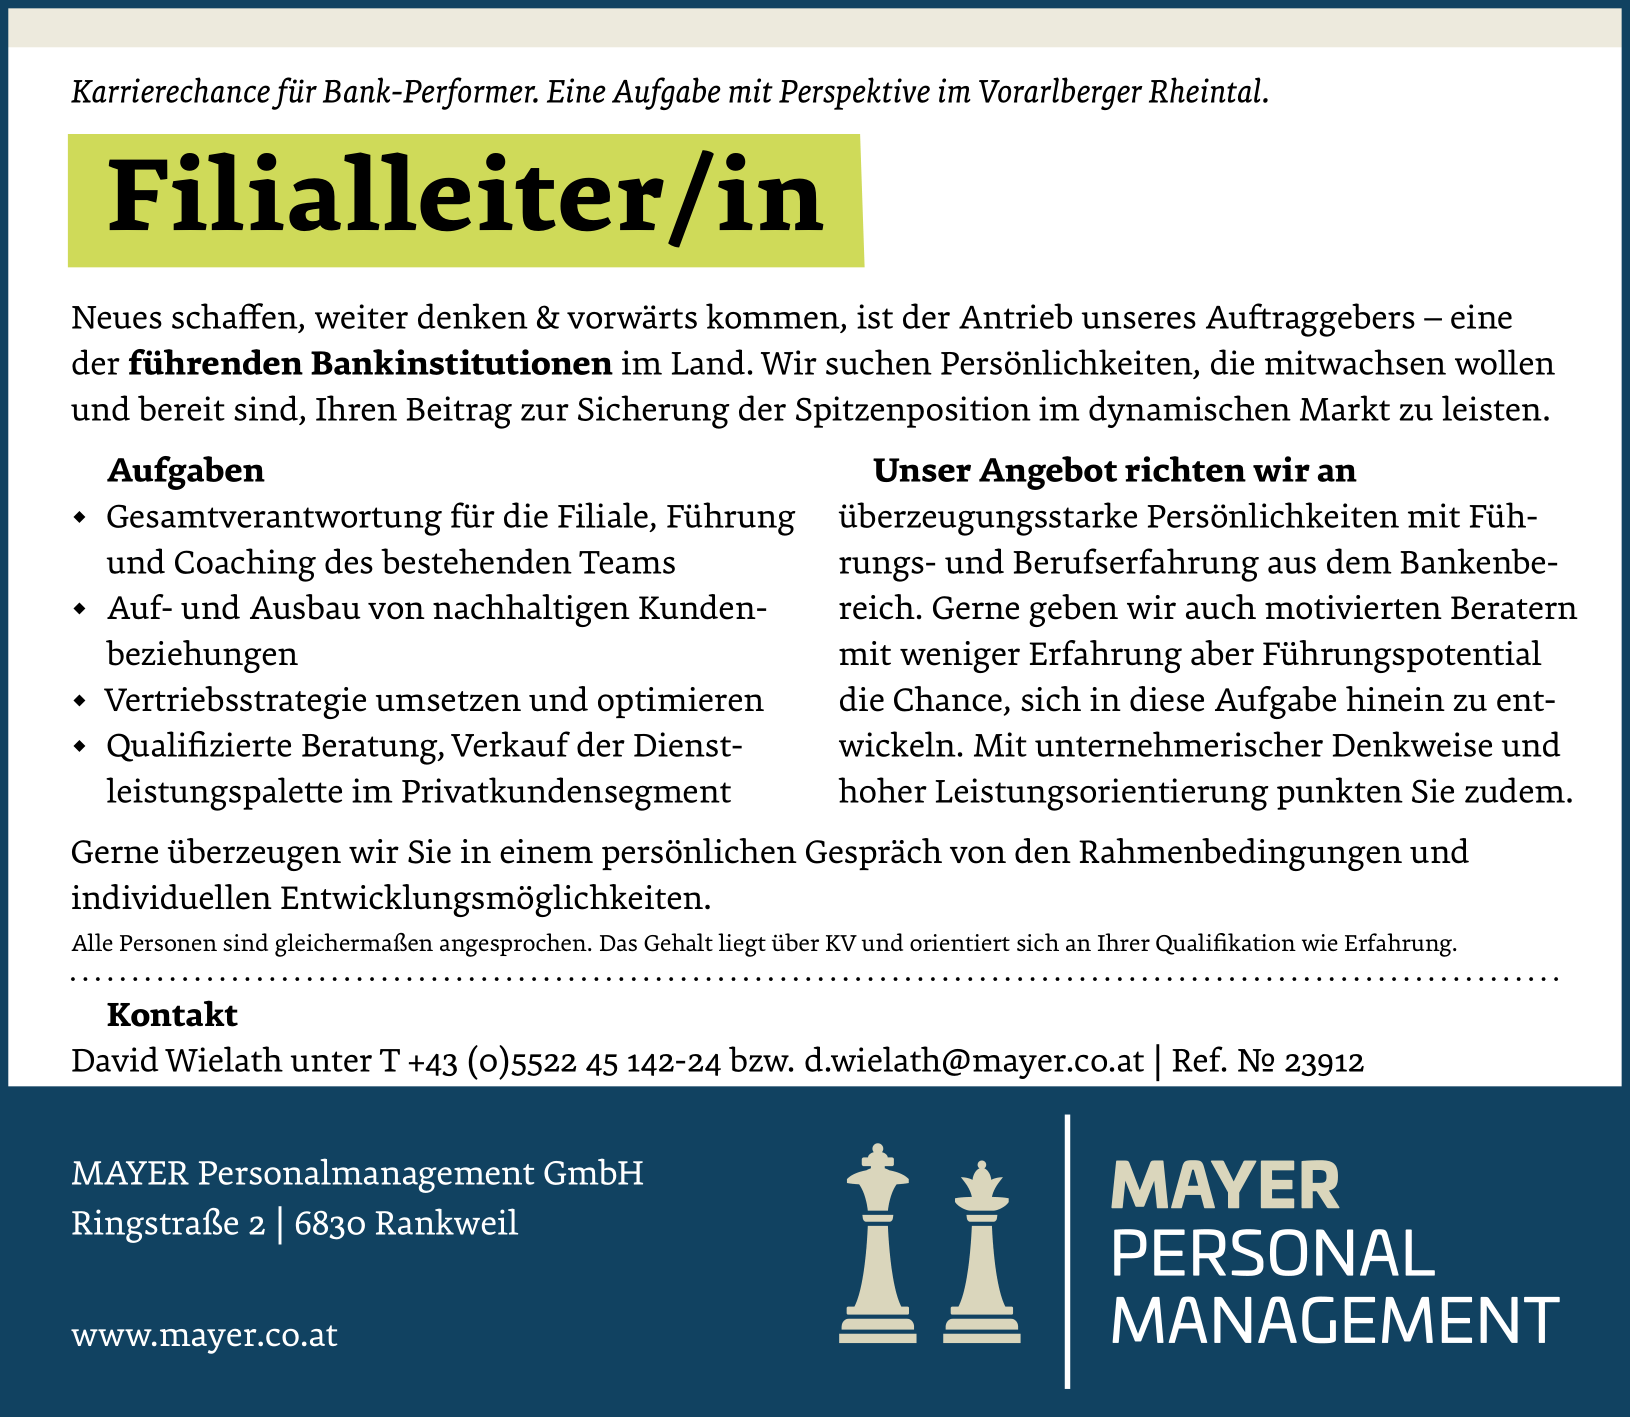 Filialleiter/in